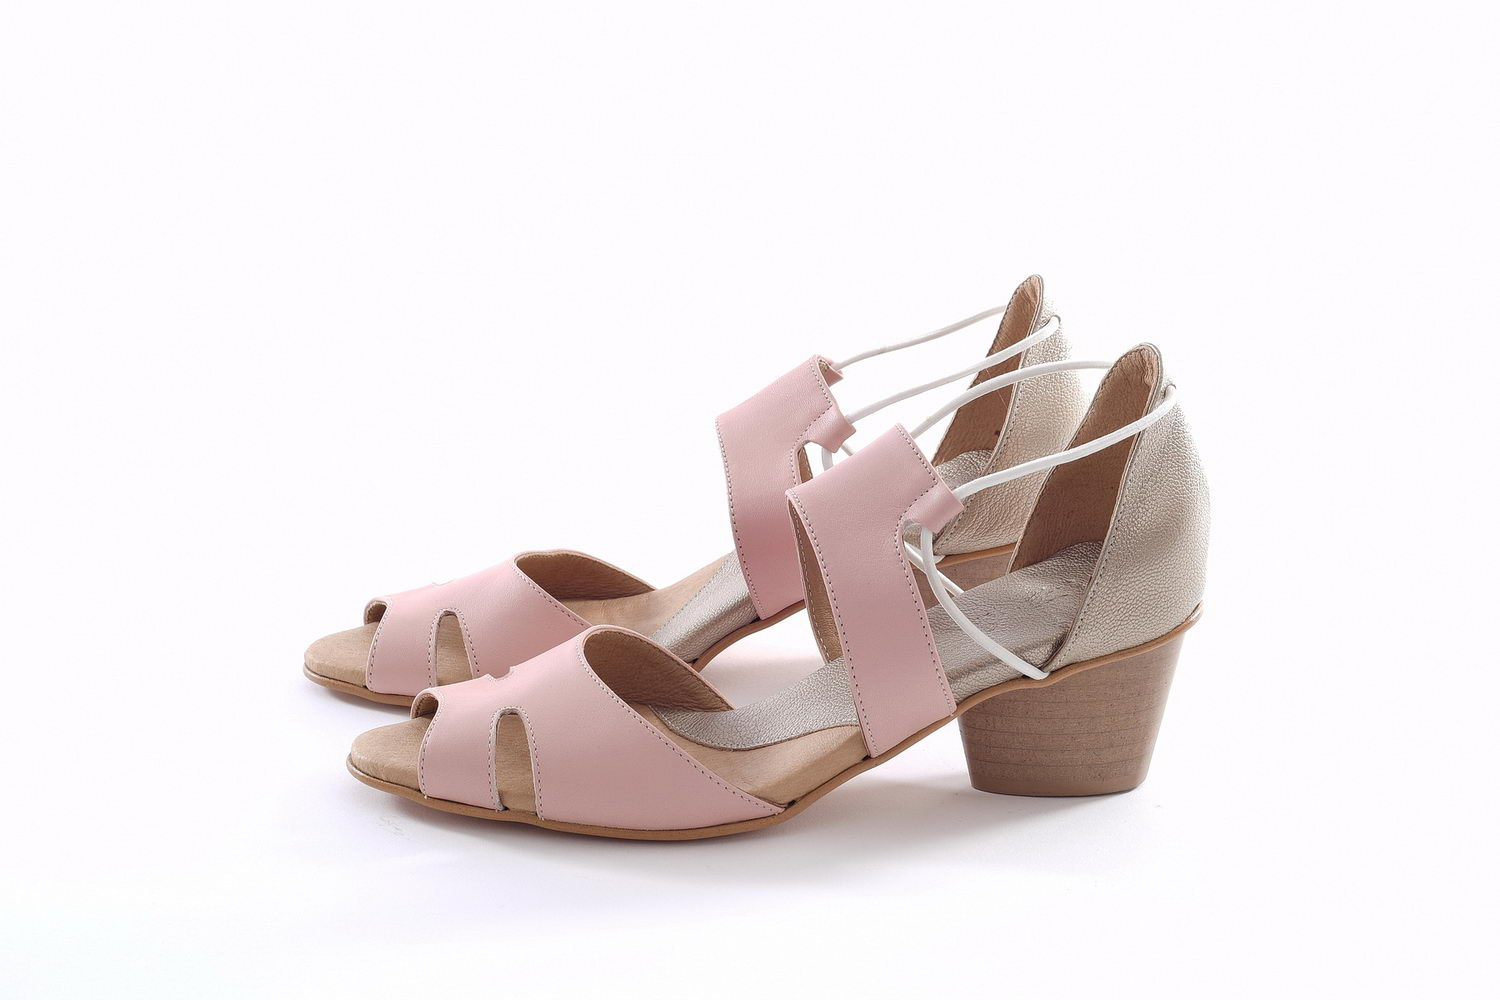 Mary Sandals - Light Pink & Gold